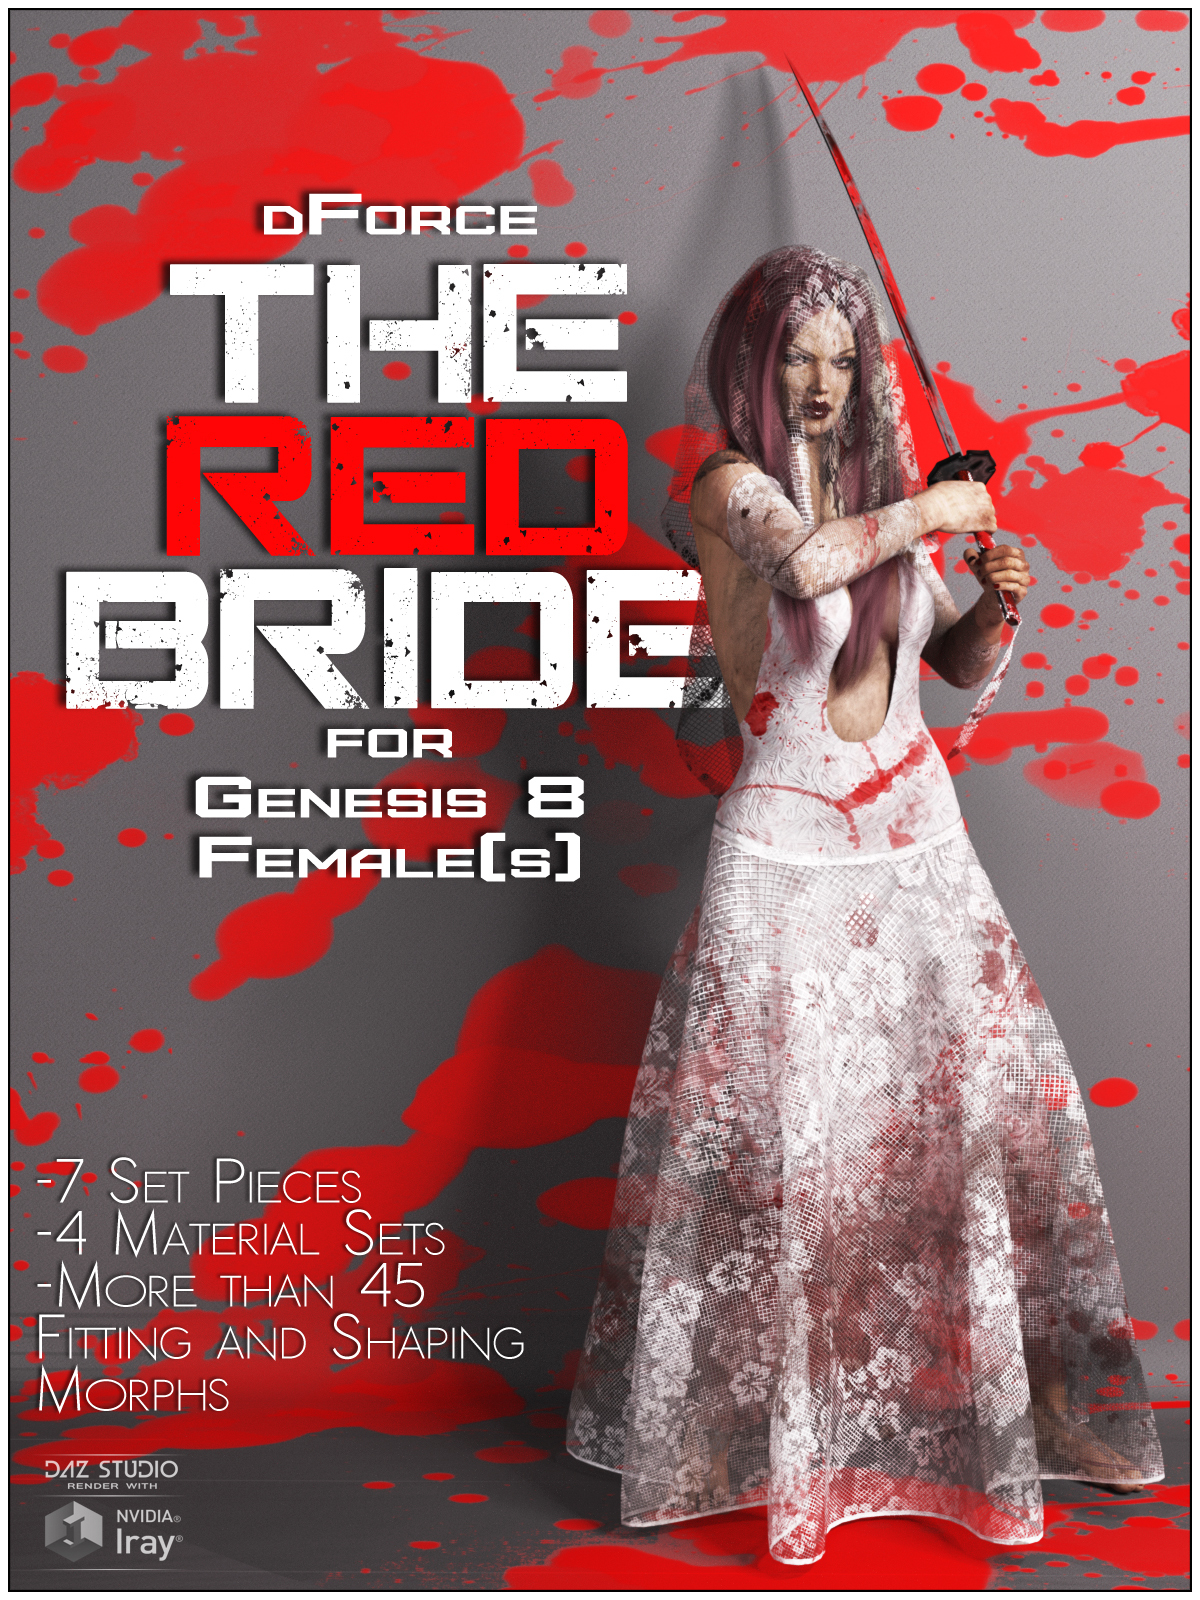 dForce The Red Bride for Genesis 8 Females